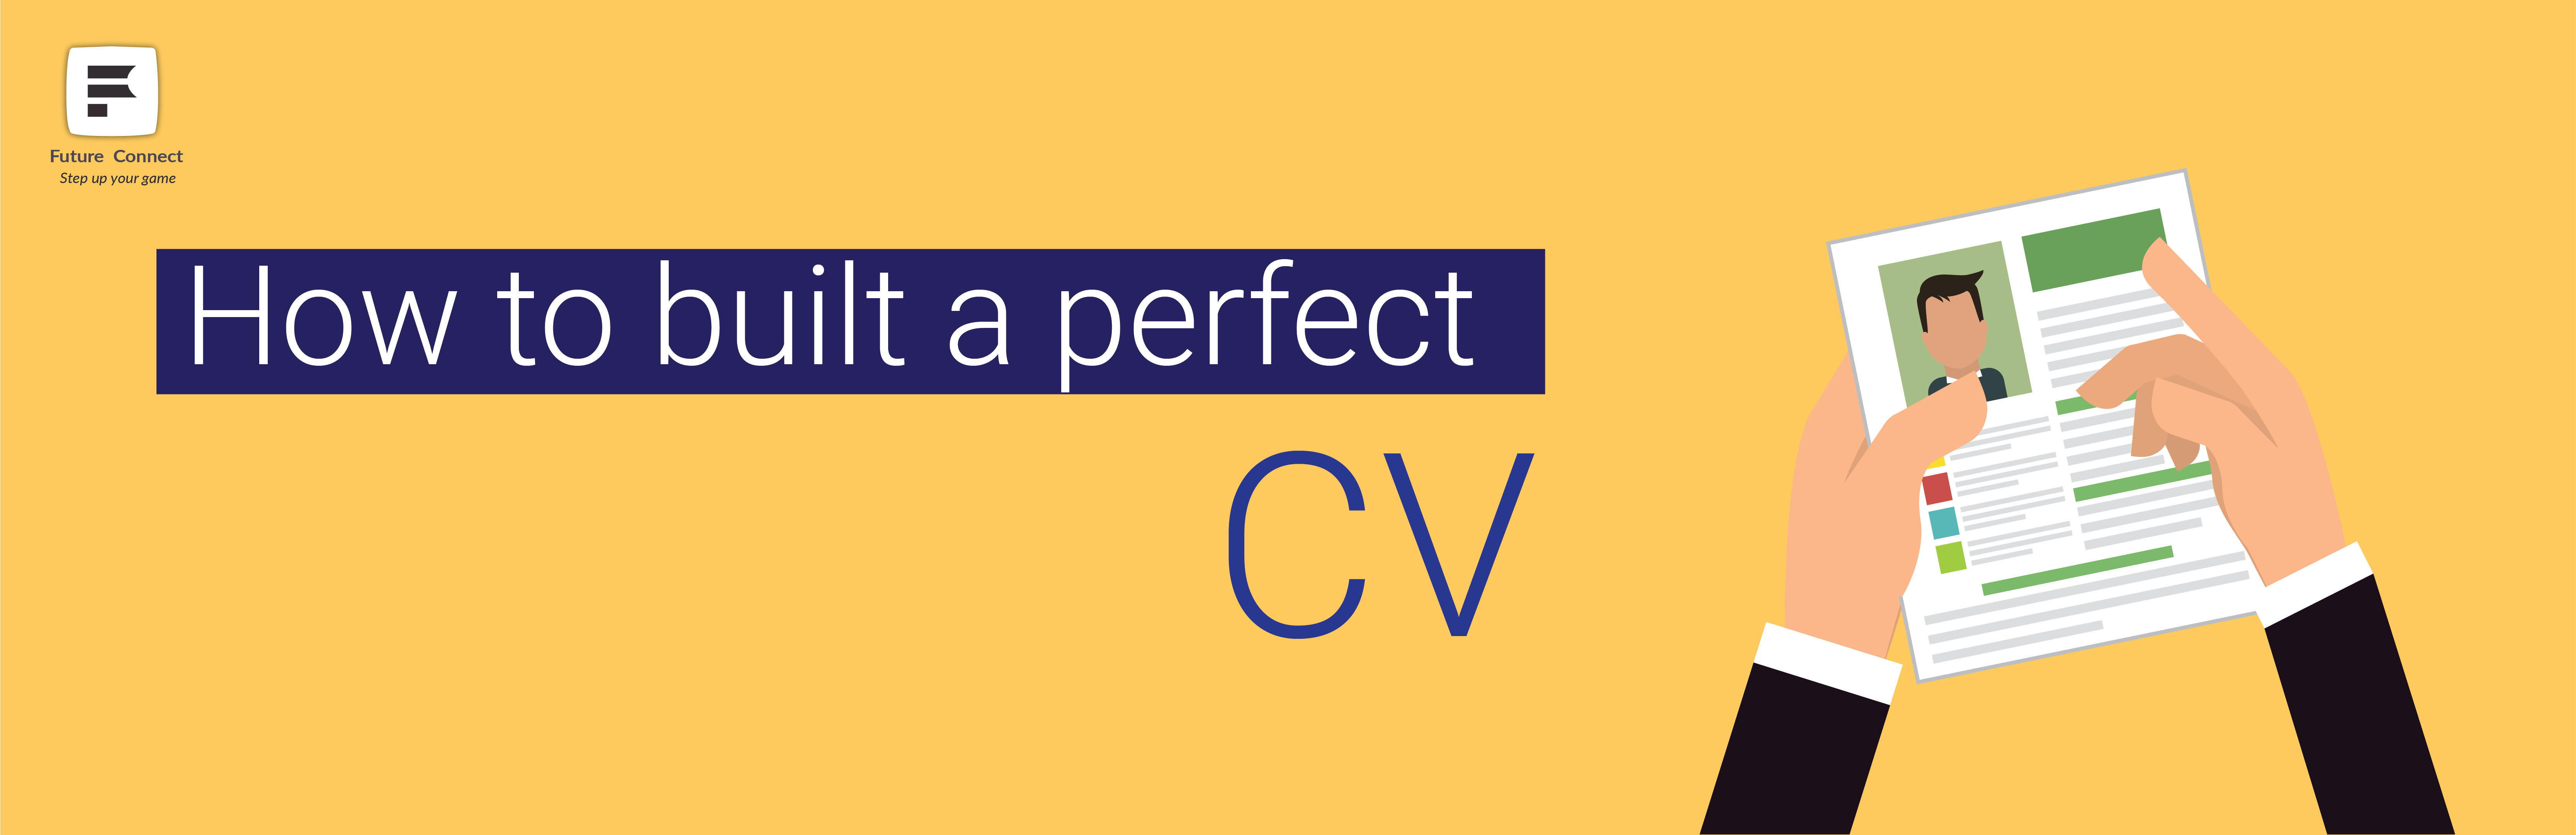 How to Build a Perfect CV?